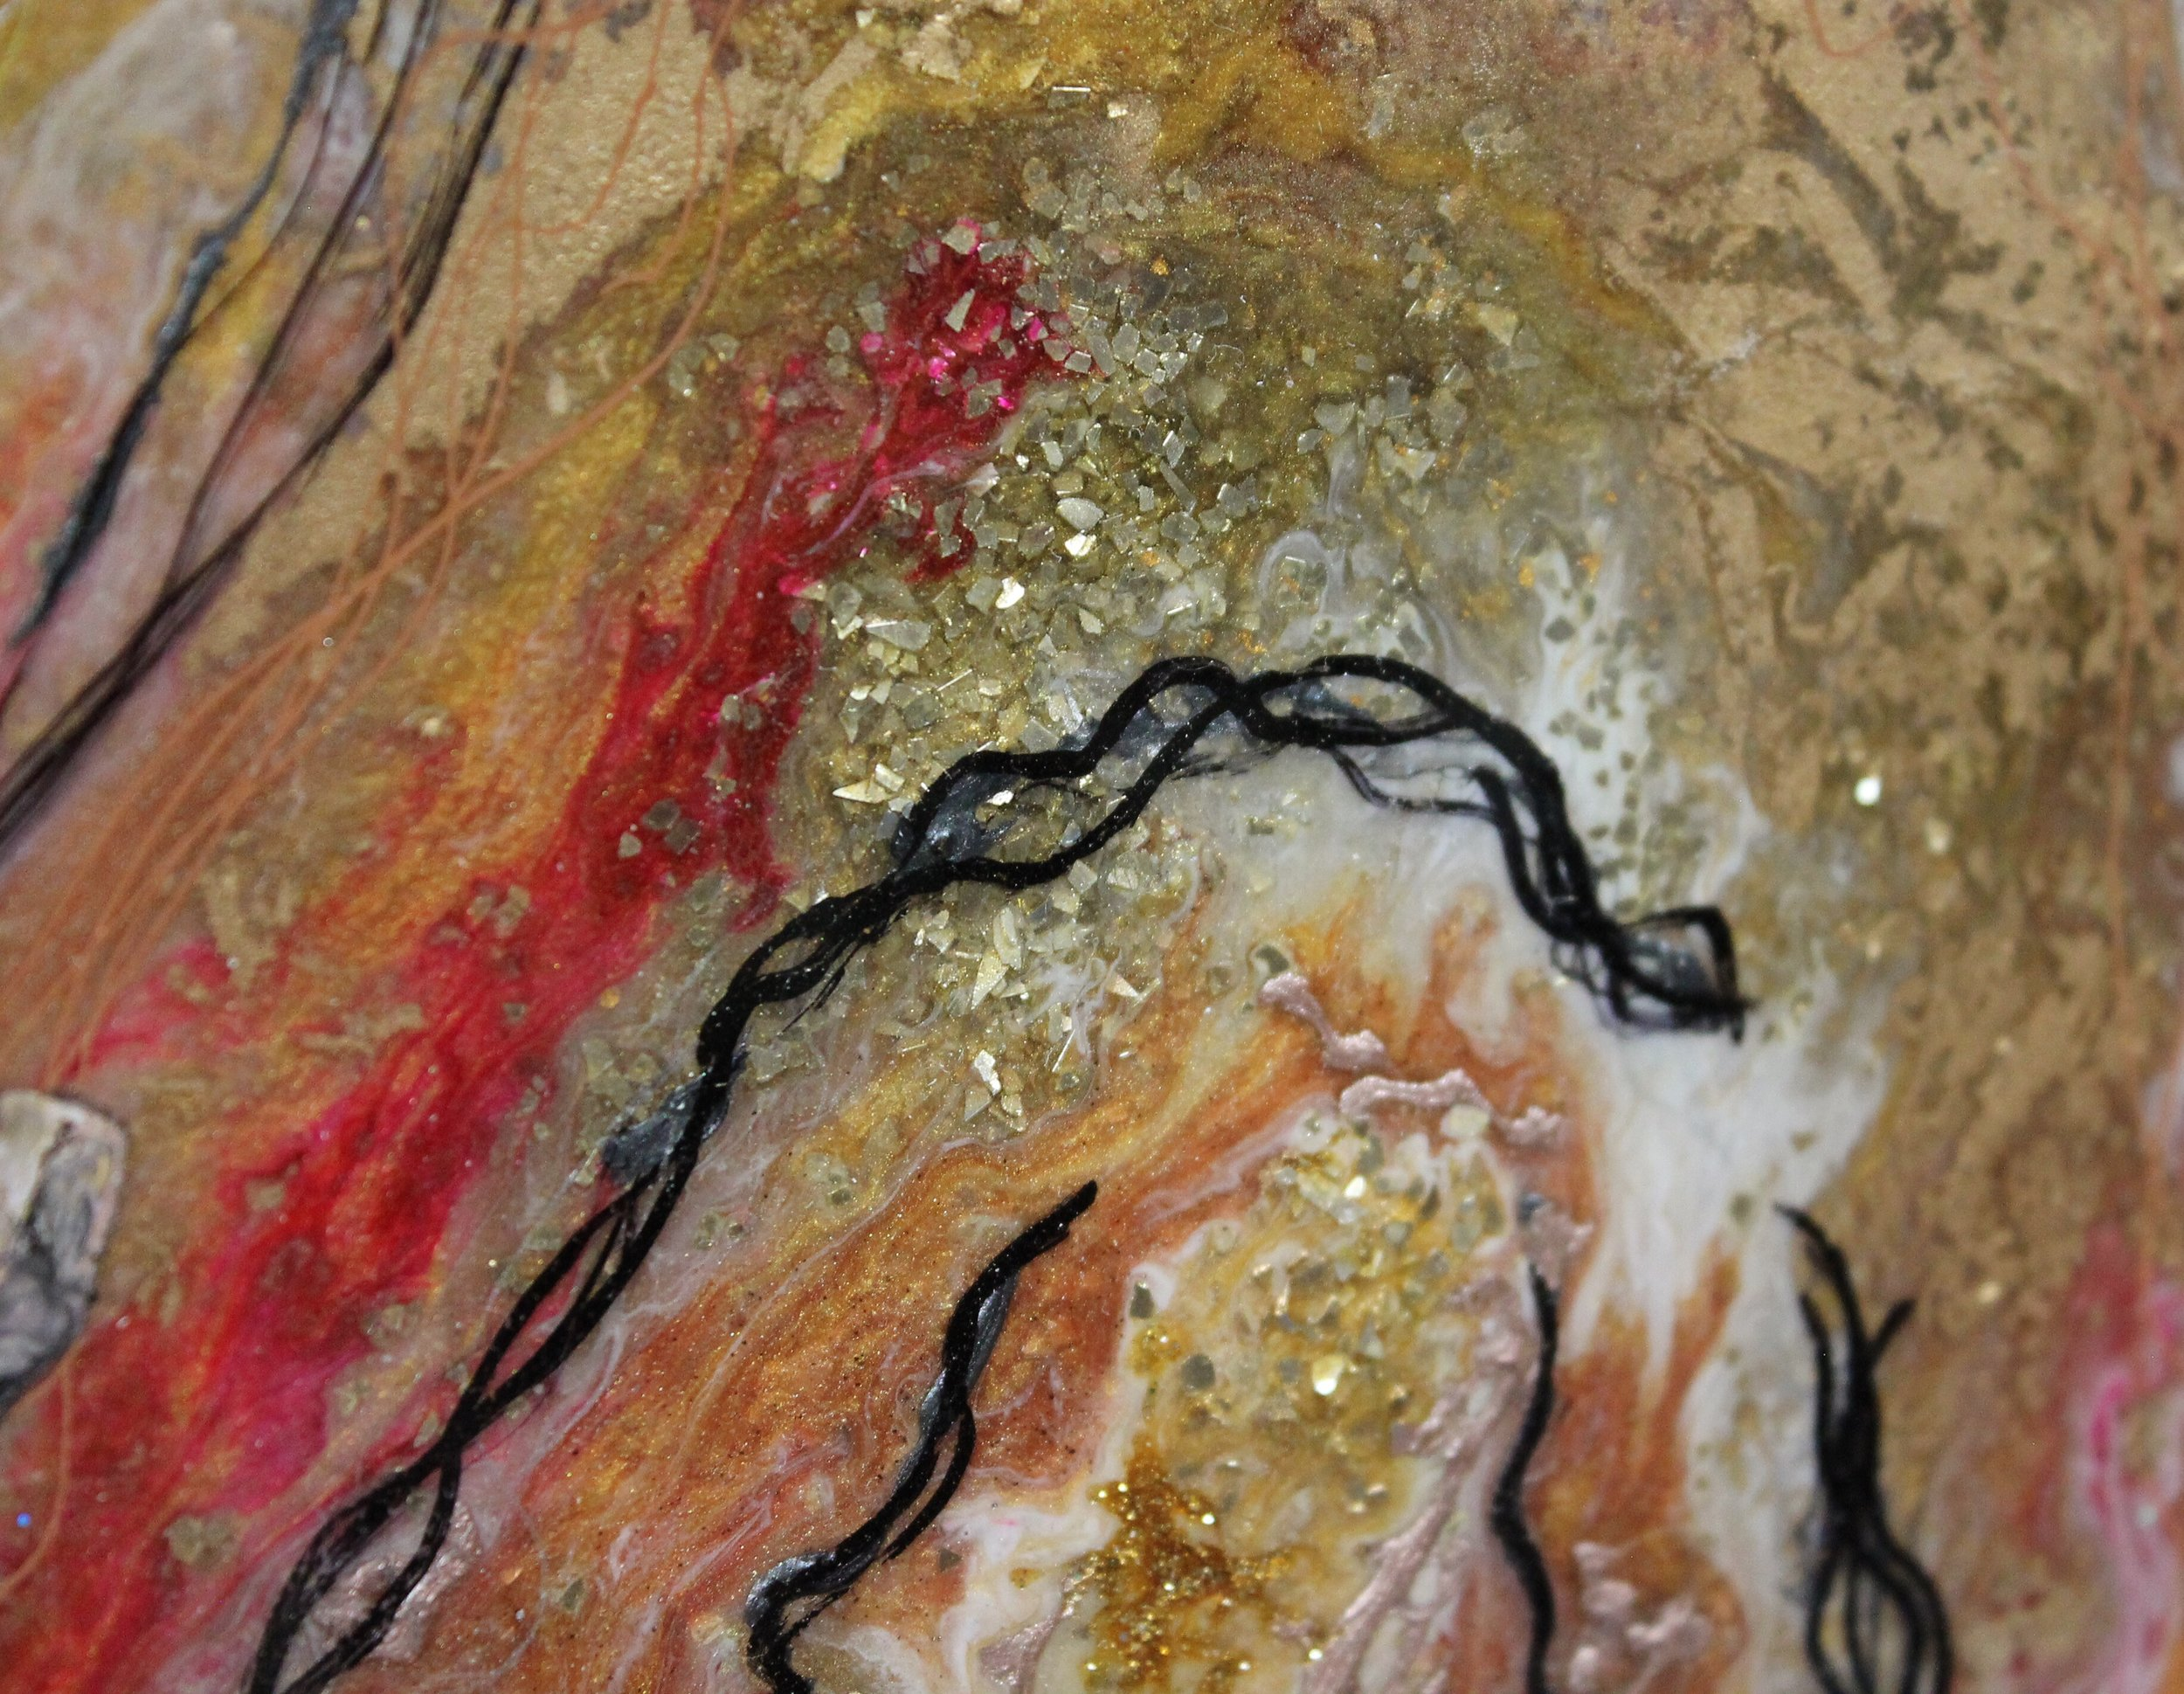 Rhythm, Detail  30x40, resin and textile on wood, framed